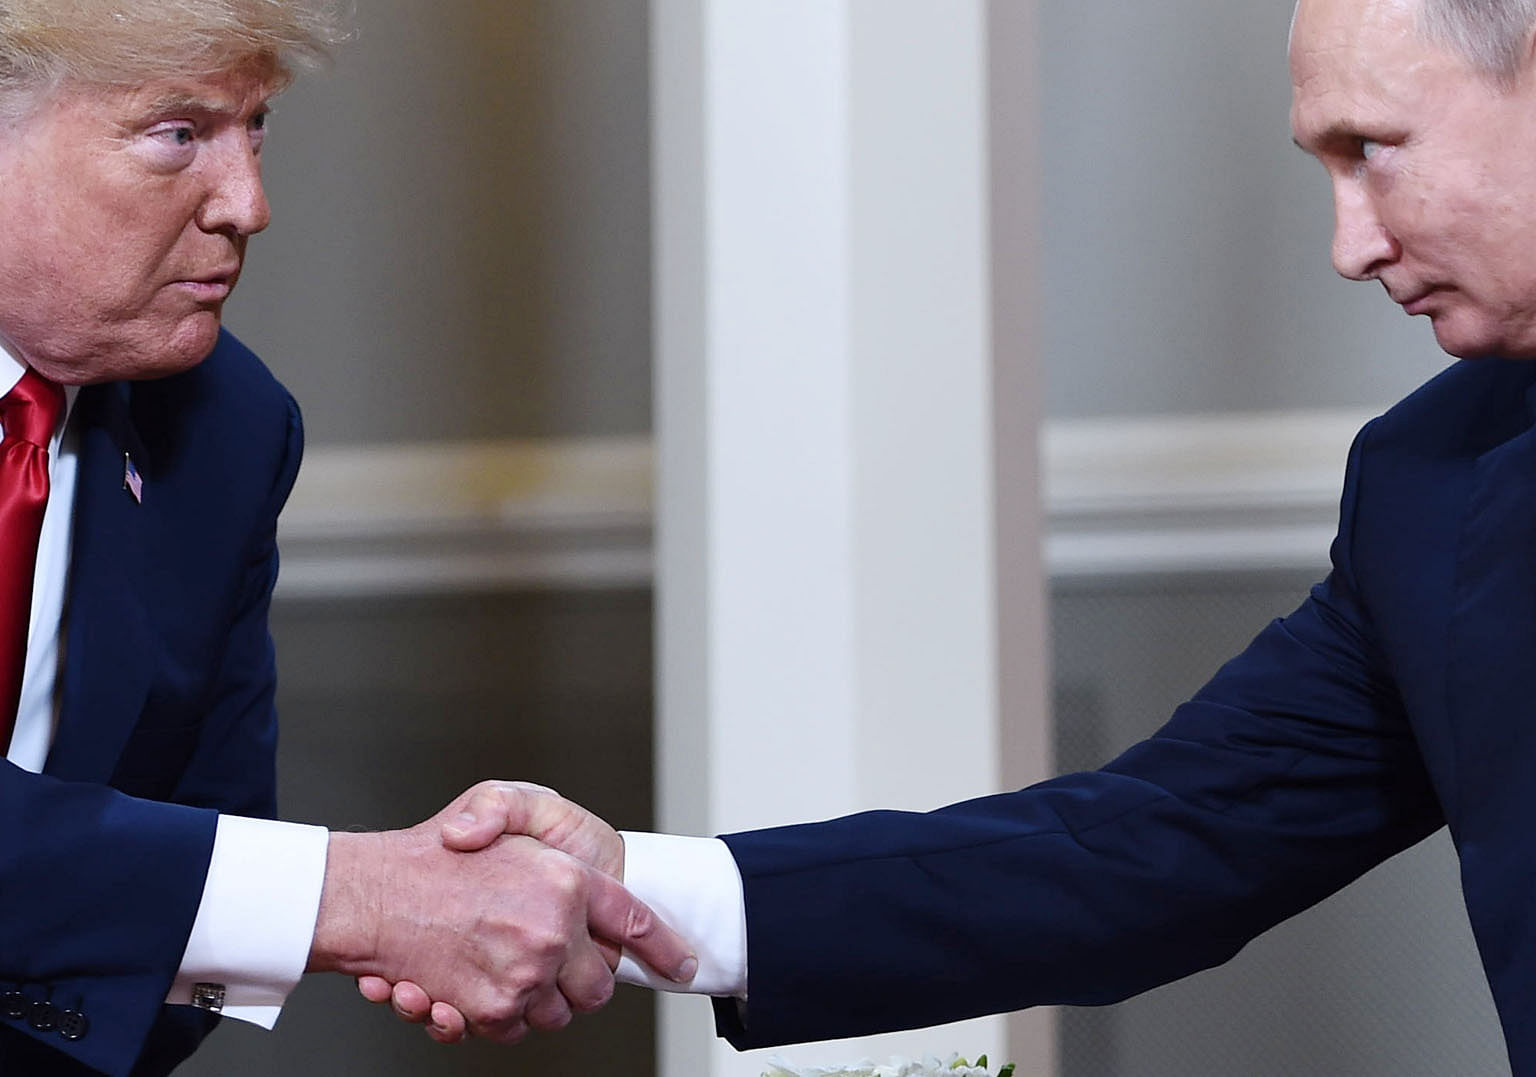 US President Donald Trump (far left) and Russian President Vladimir Putin at the Helsinki summit in July. Russian operators were accused of manipulating social media to disseminate disinformation during the 2016 US presidential election, which Mr Tru